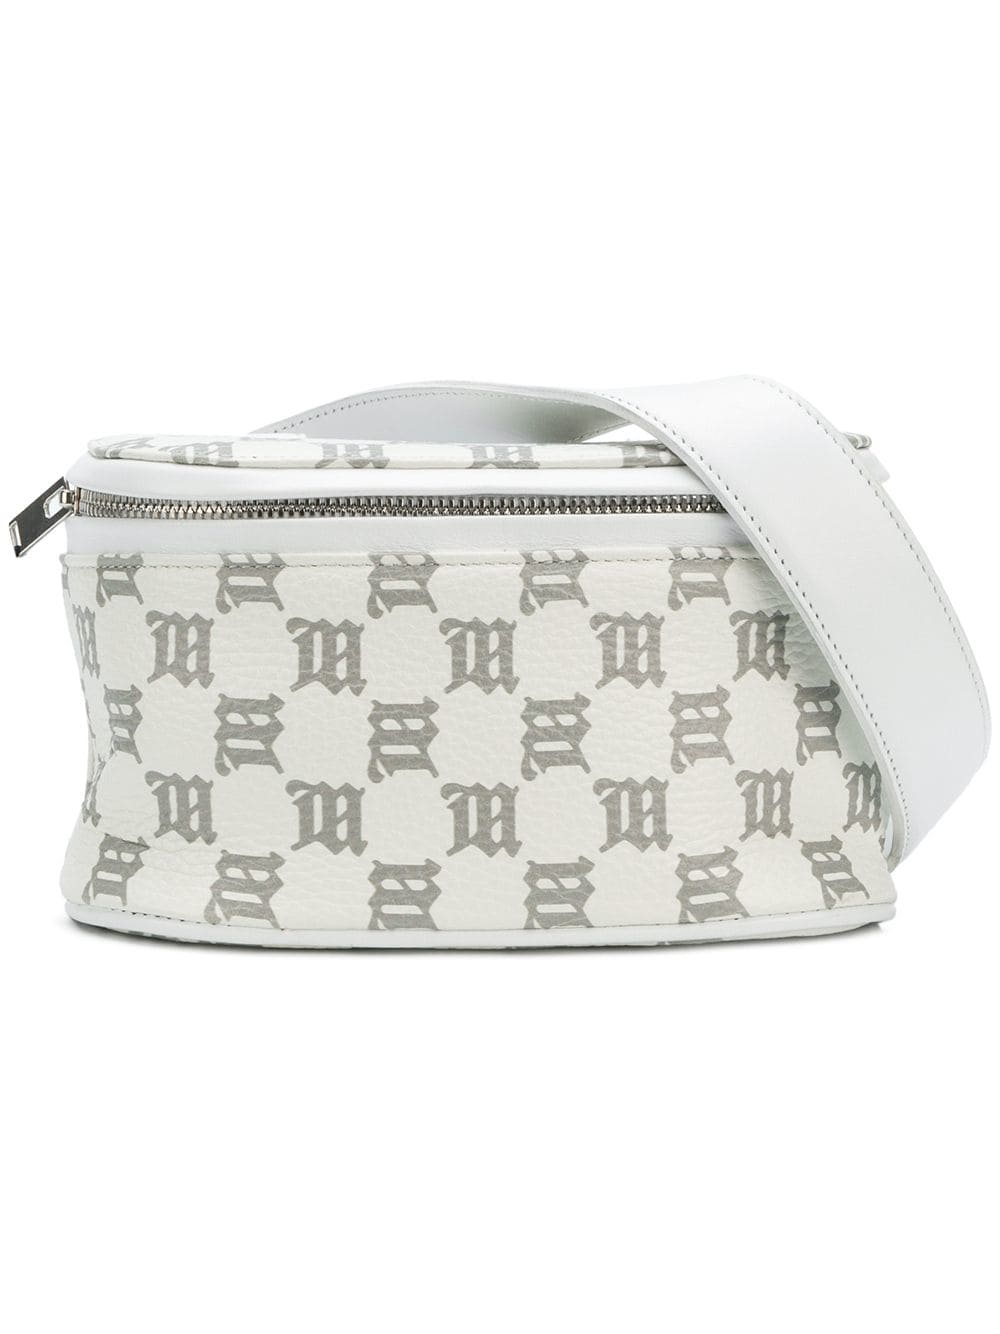 MISBHV Monogram Belt Bag - White